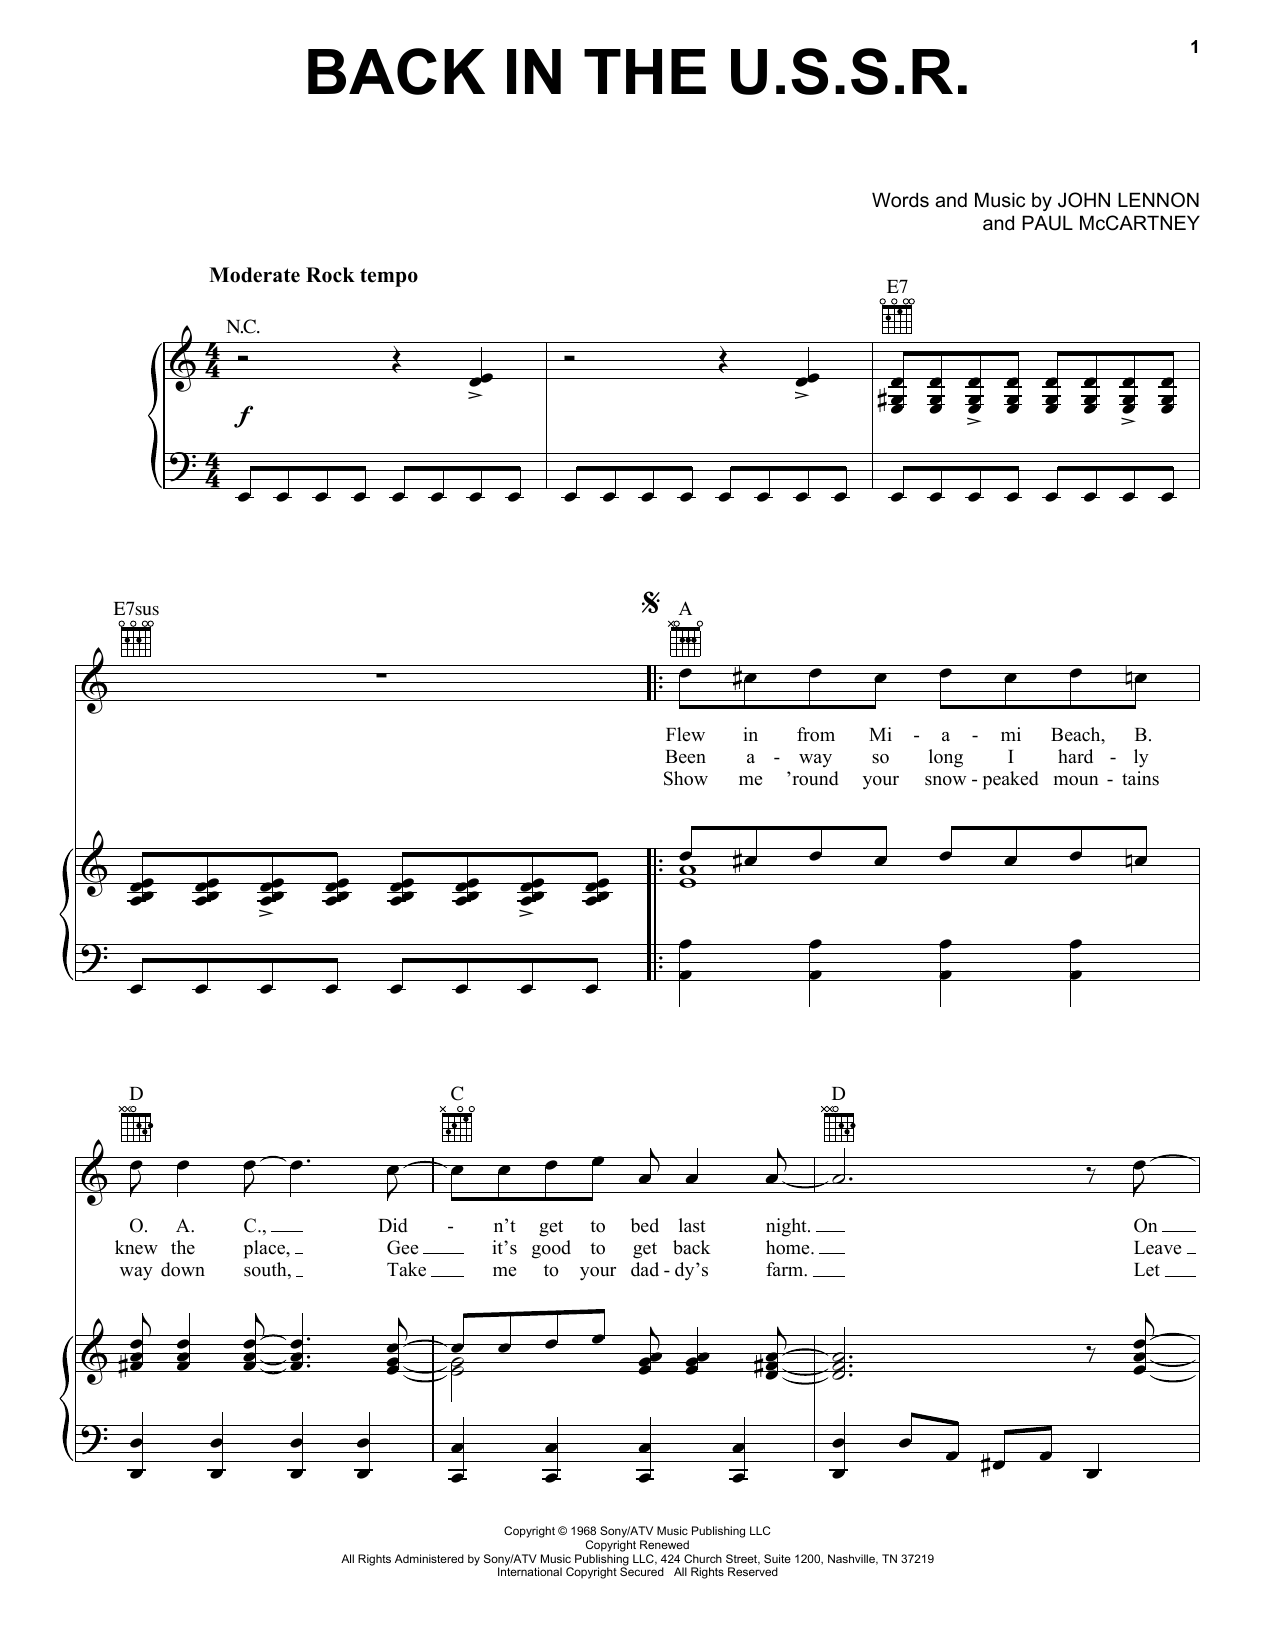 The Beatles Back In The U.S.S.R. sheet music notes and chords. Download Printable PDF.